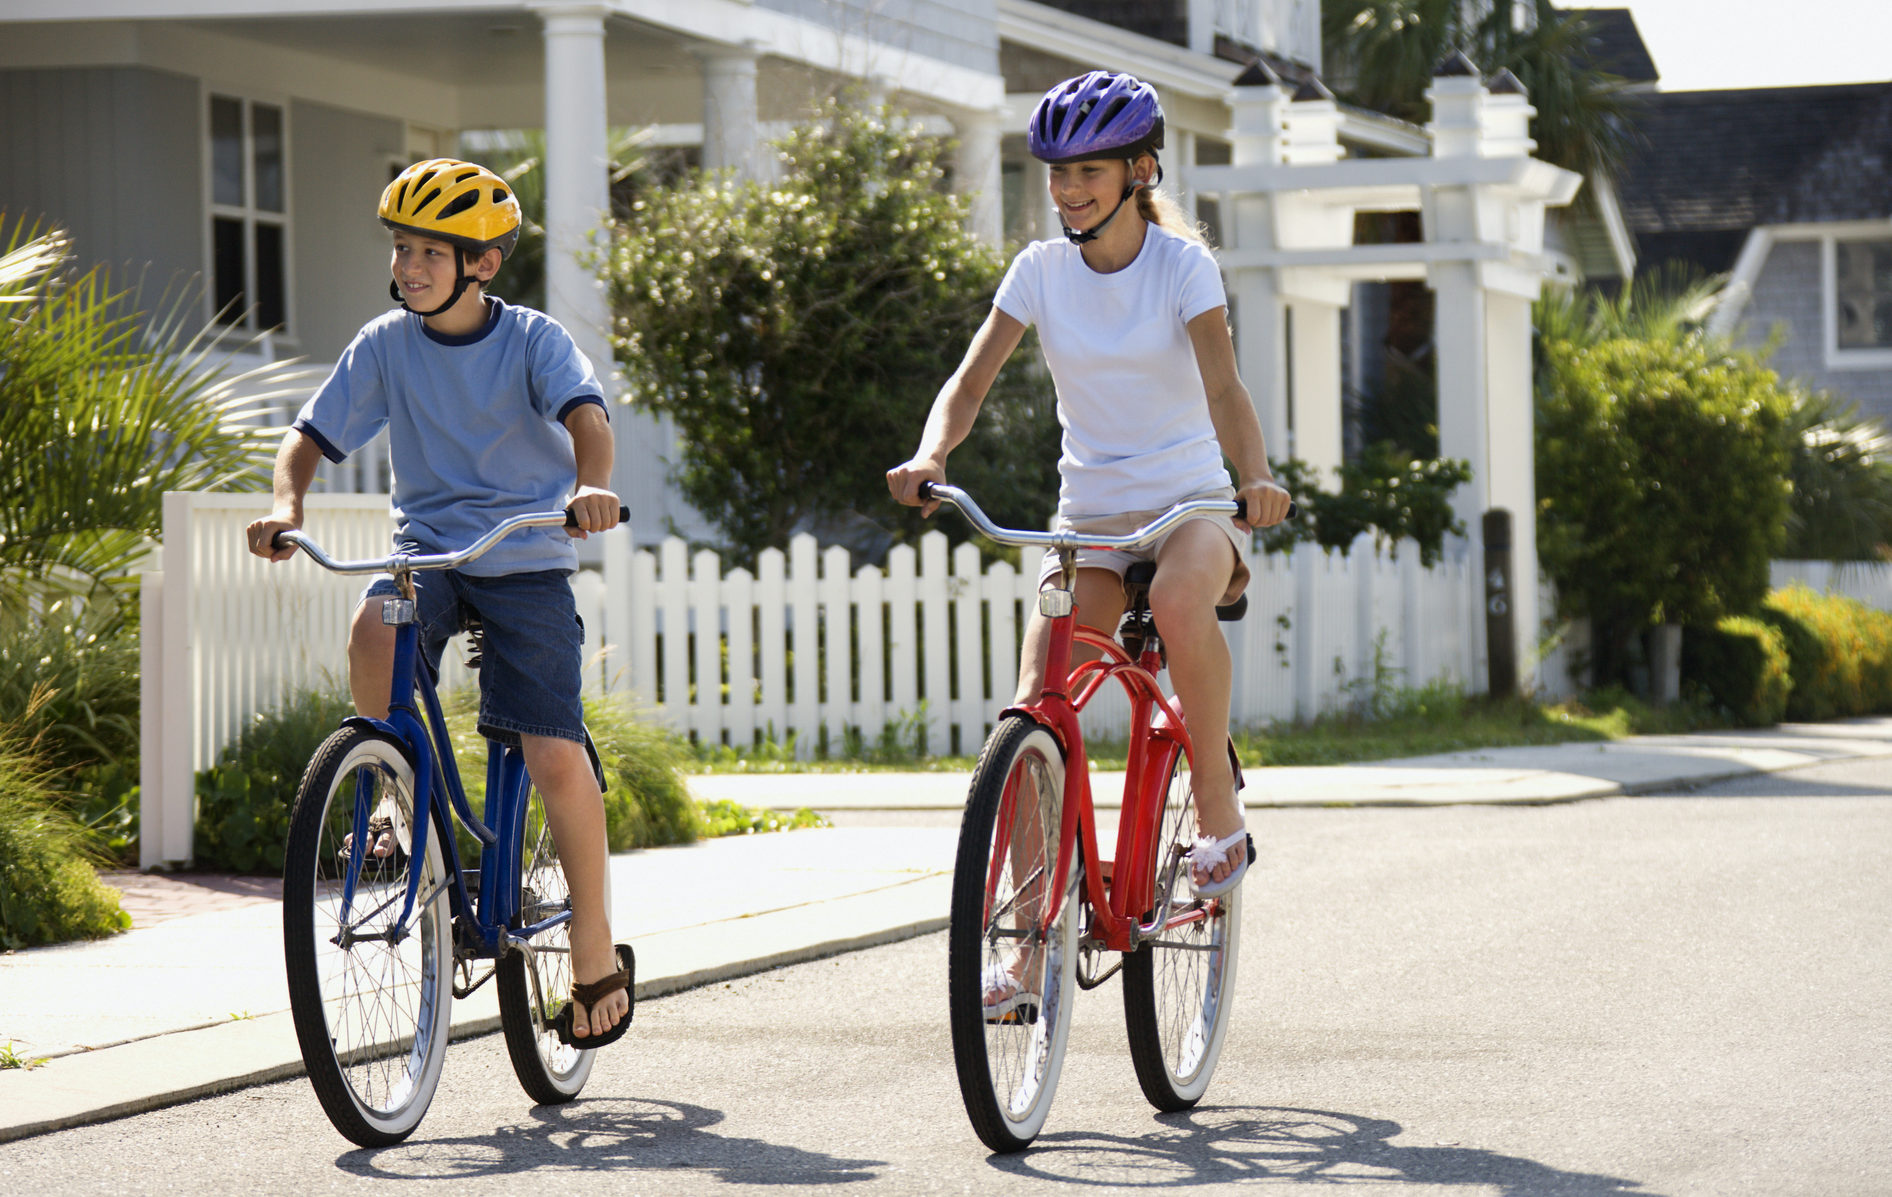 4 Tips For Teaching Your Child How To Ride A Bike On The